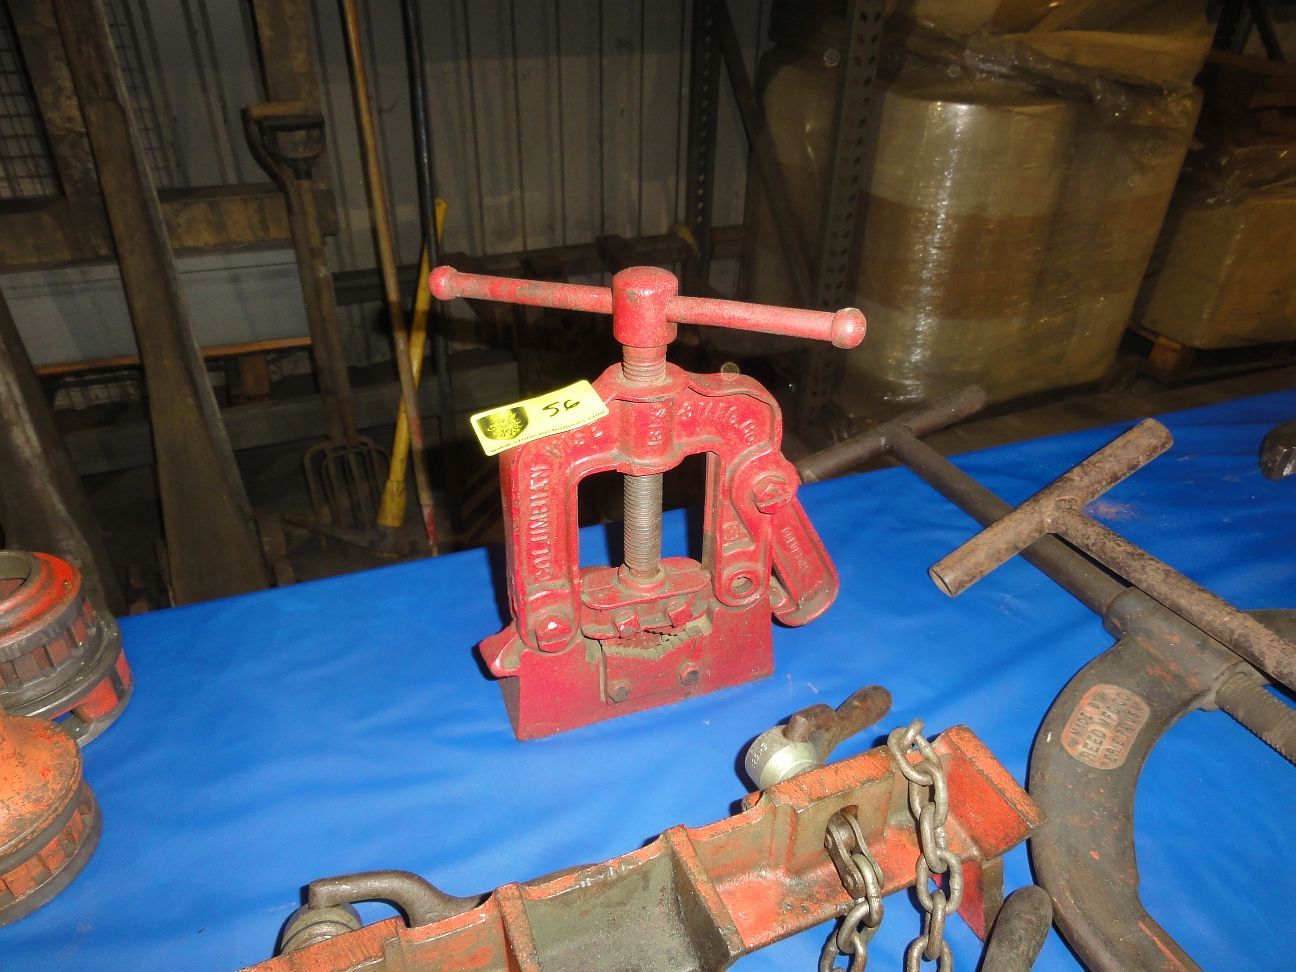 Lot 56 - Pipe Vise